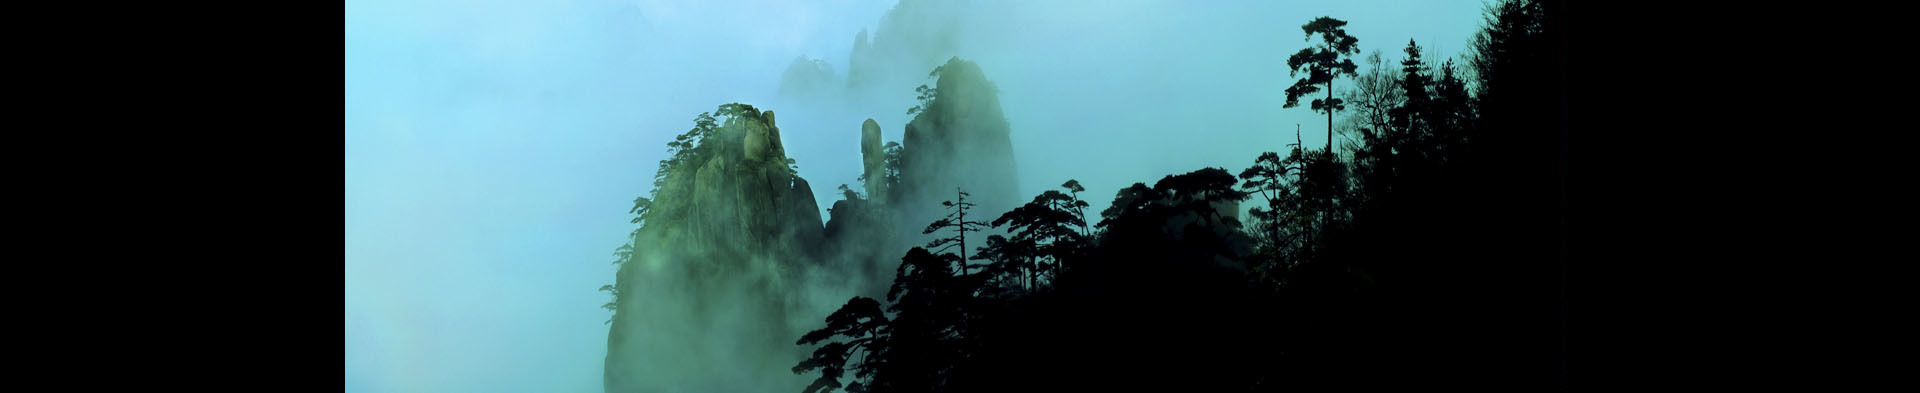 <div class='title'>           Huangshan Mountain Range         </div>                 <div class='description'>           Huangshan mountain range in southern Anhui province in eastern China         </div>